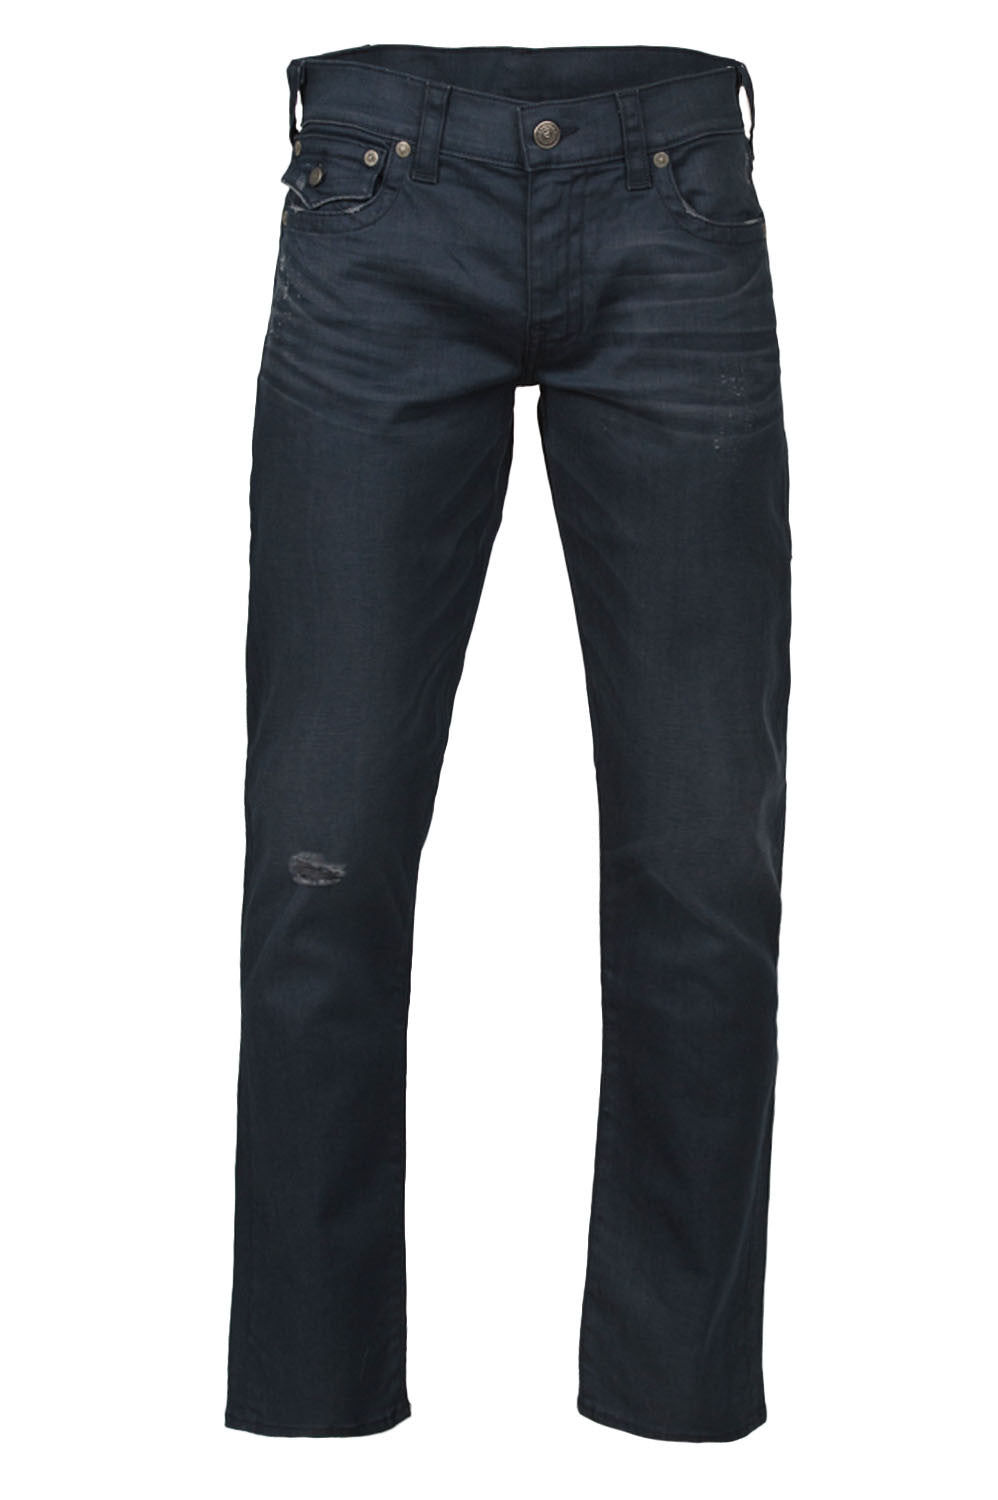 True Religion Geno Flap Pitch Dark Denim Front